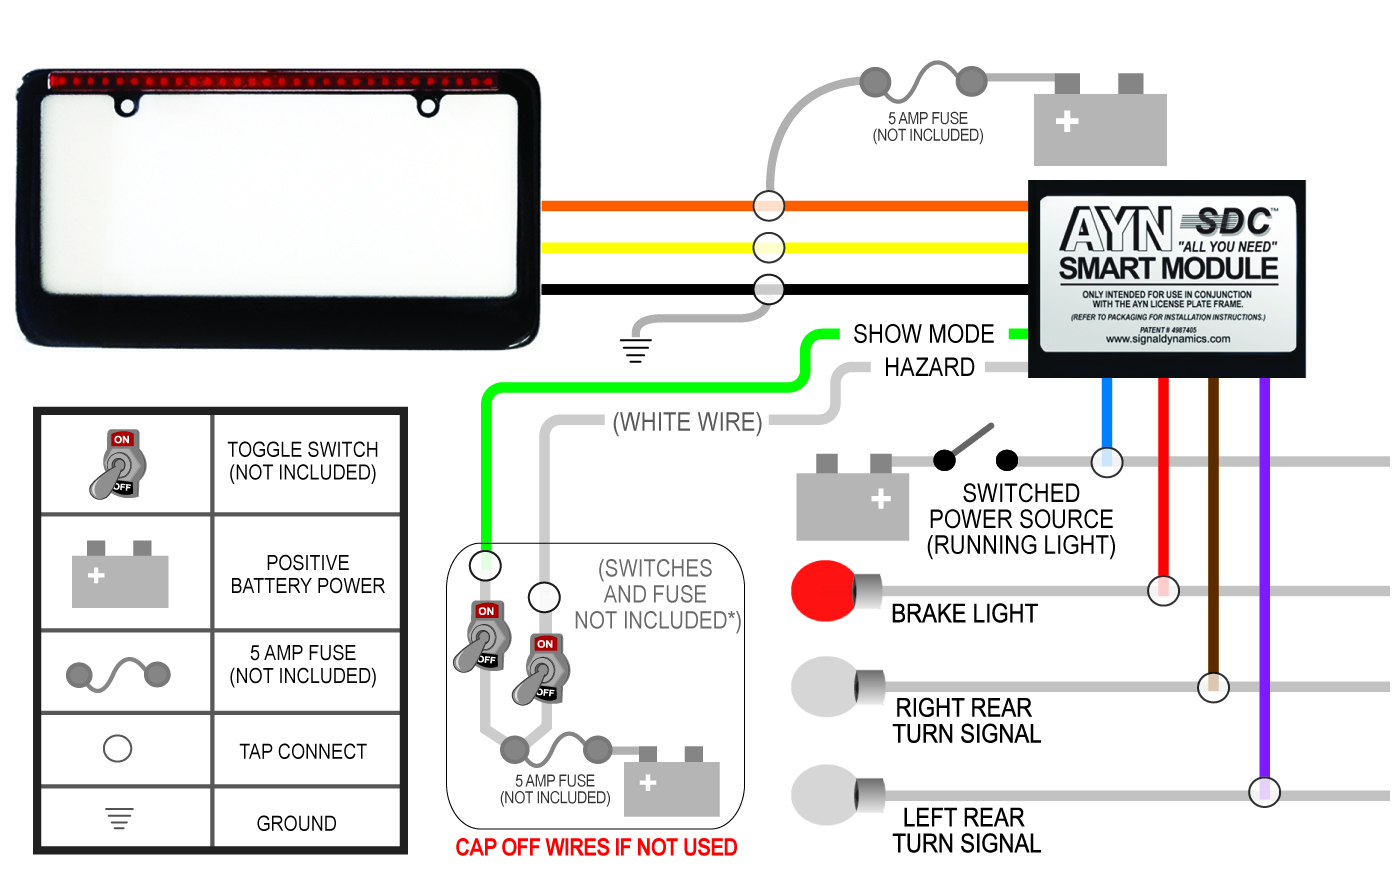 black auto wiring diagram?t=1399476781 black ayn automotive license plate frame & smart module combo Basic Turn Signal Wiring Diagram at gsmx.co